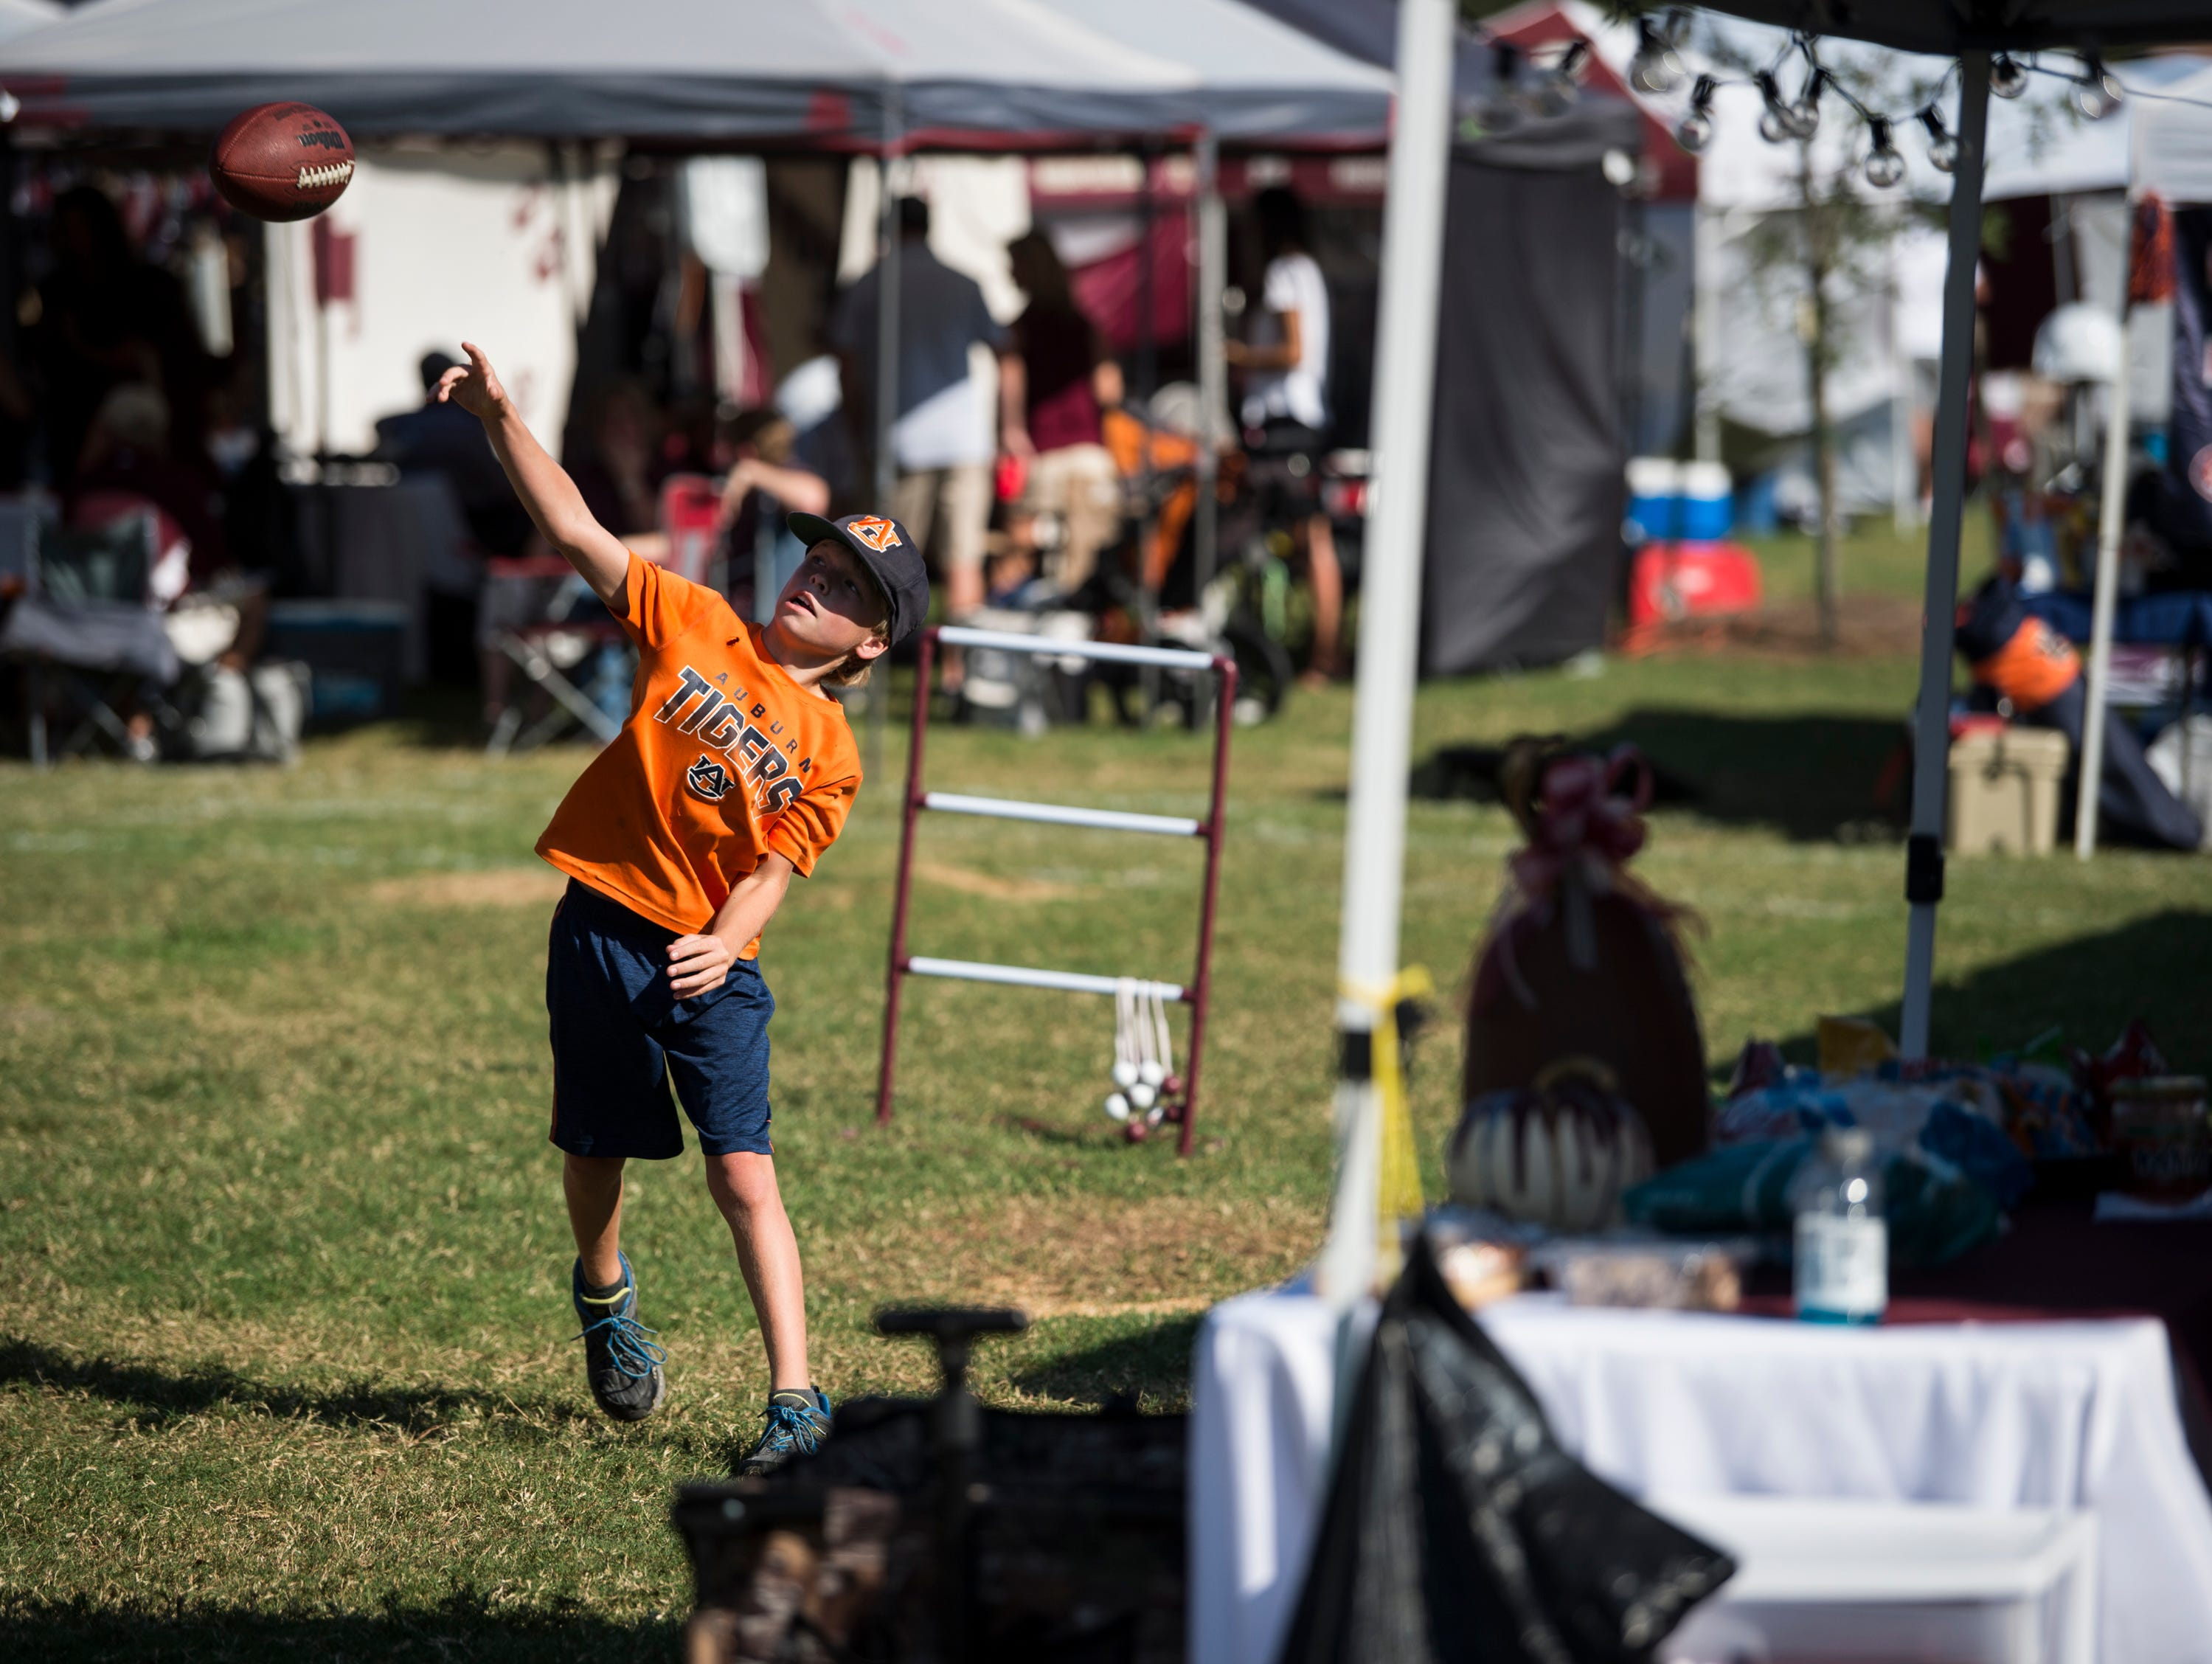 Tyler Kauffman, 11, plays catch outside Davis Wade Stadium in Starkville, Miss., on Saturday, Oct. 6, 2018.